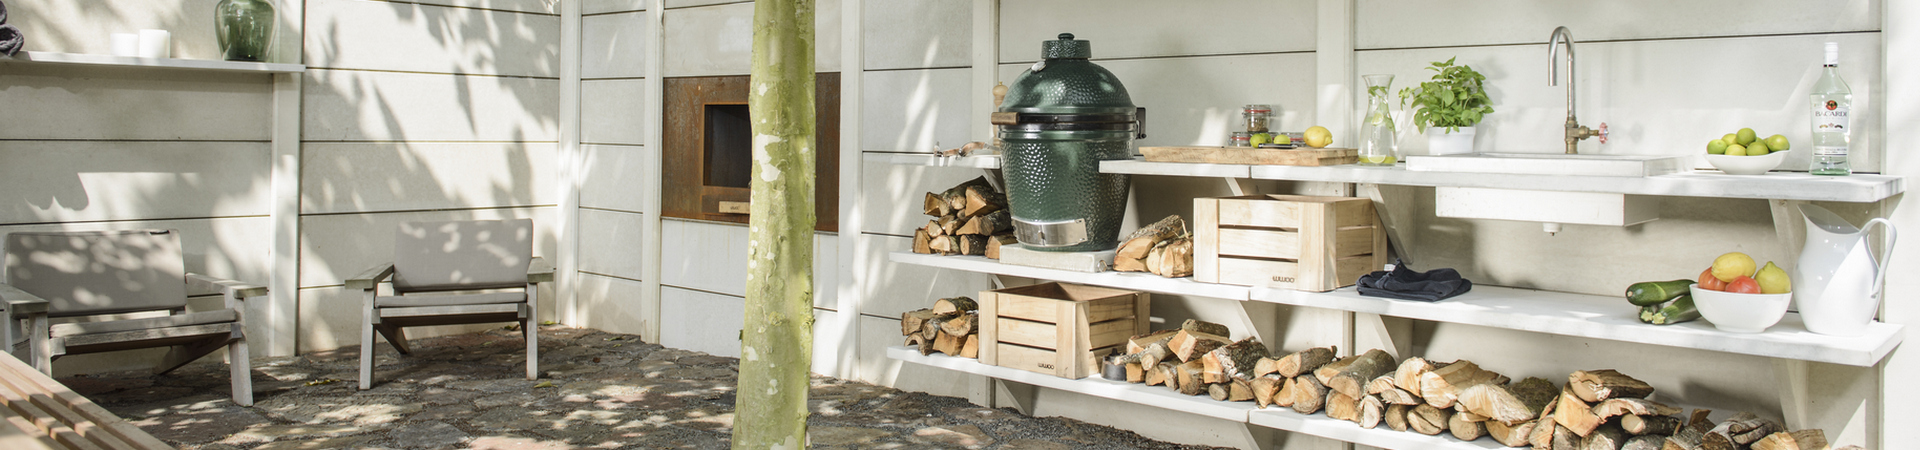 WWOO Outdoor Kitchen